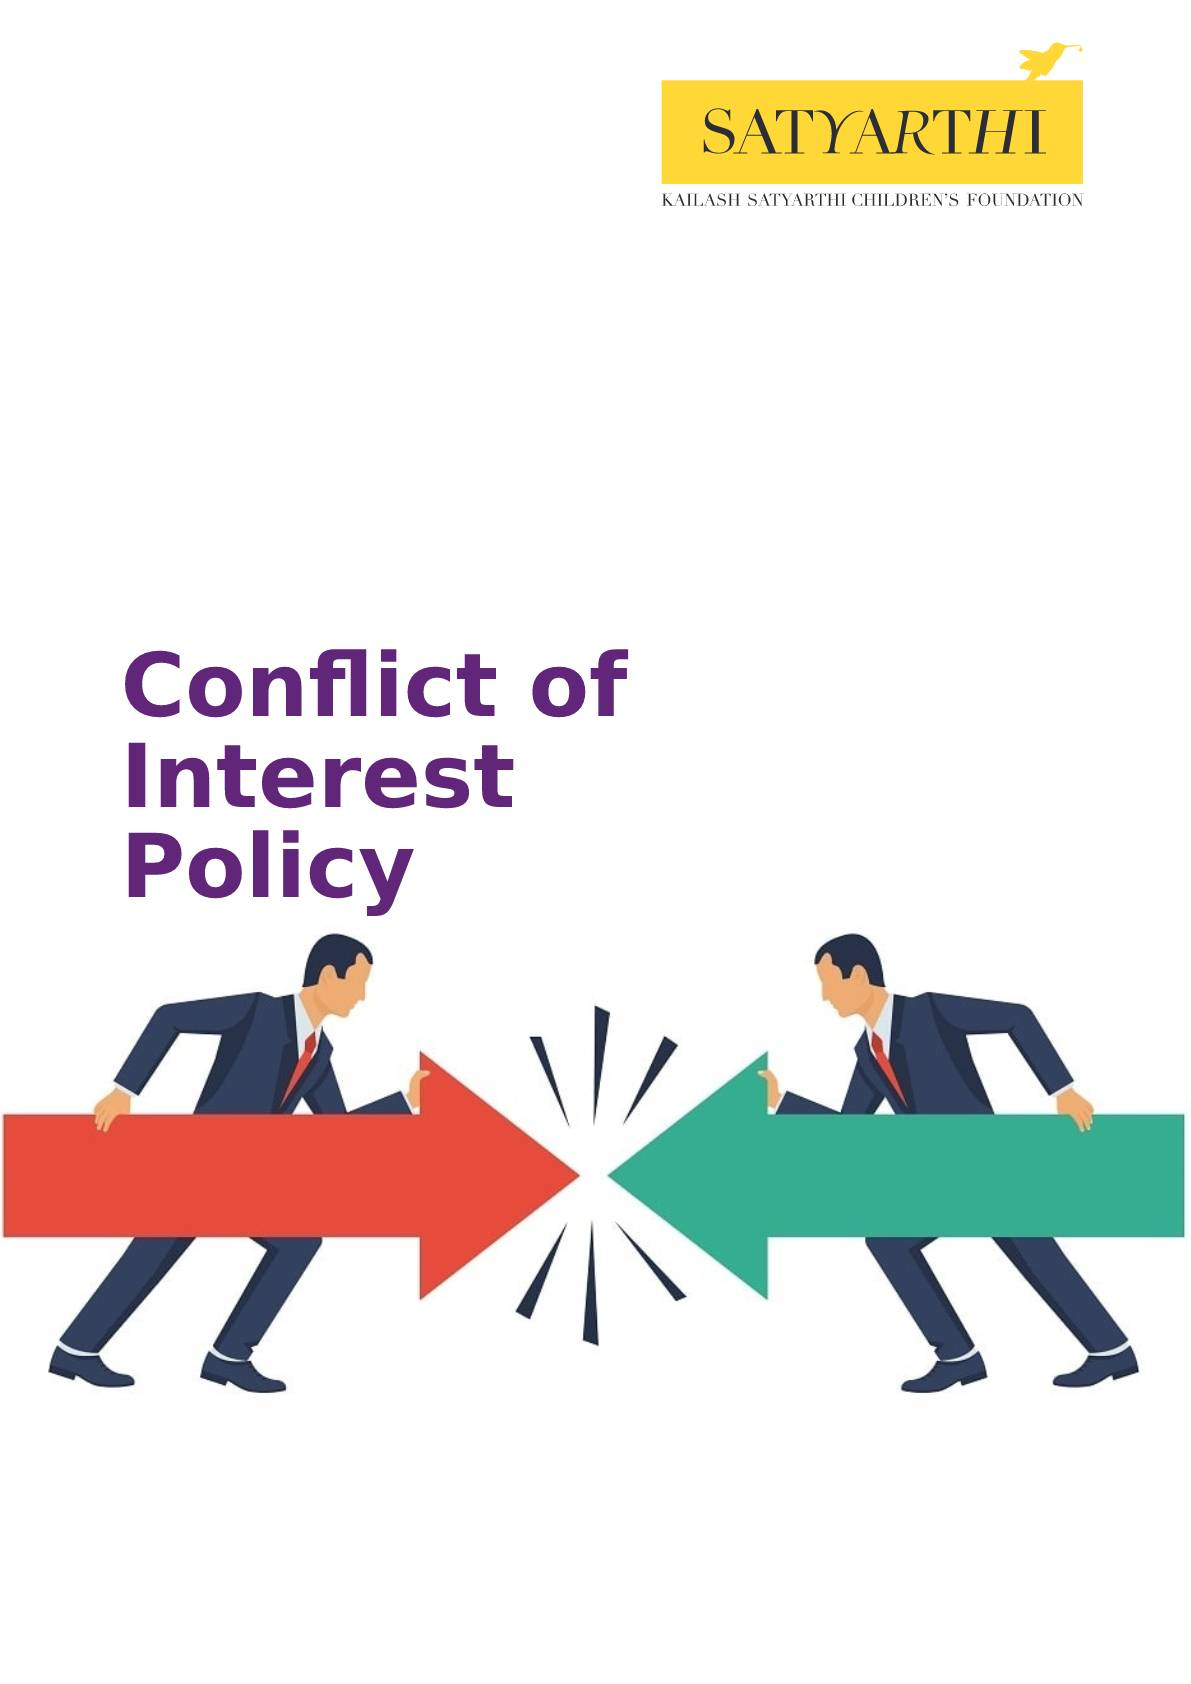 17.Conflict of Interest Policy Declaration KSCF pdf KSCF Policy